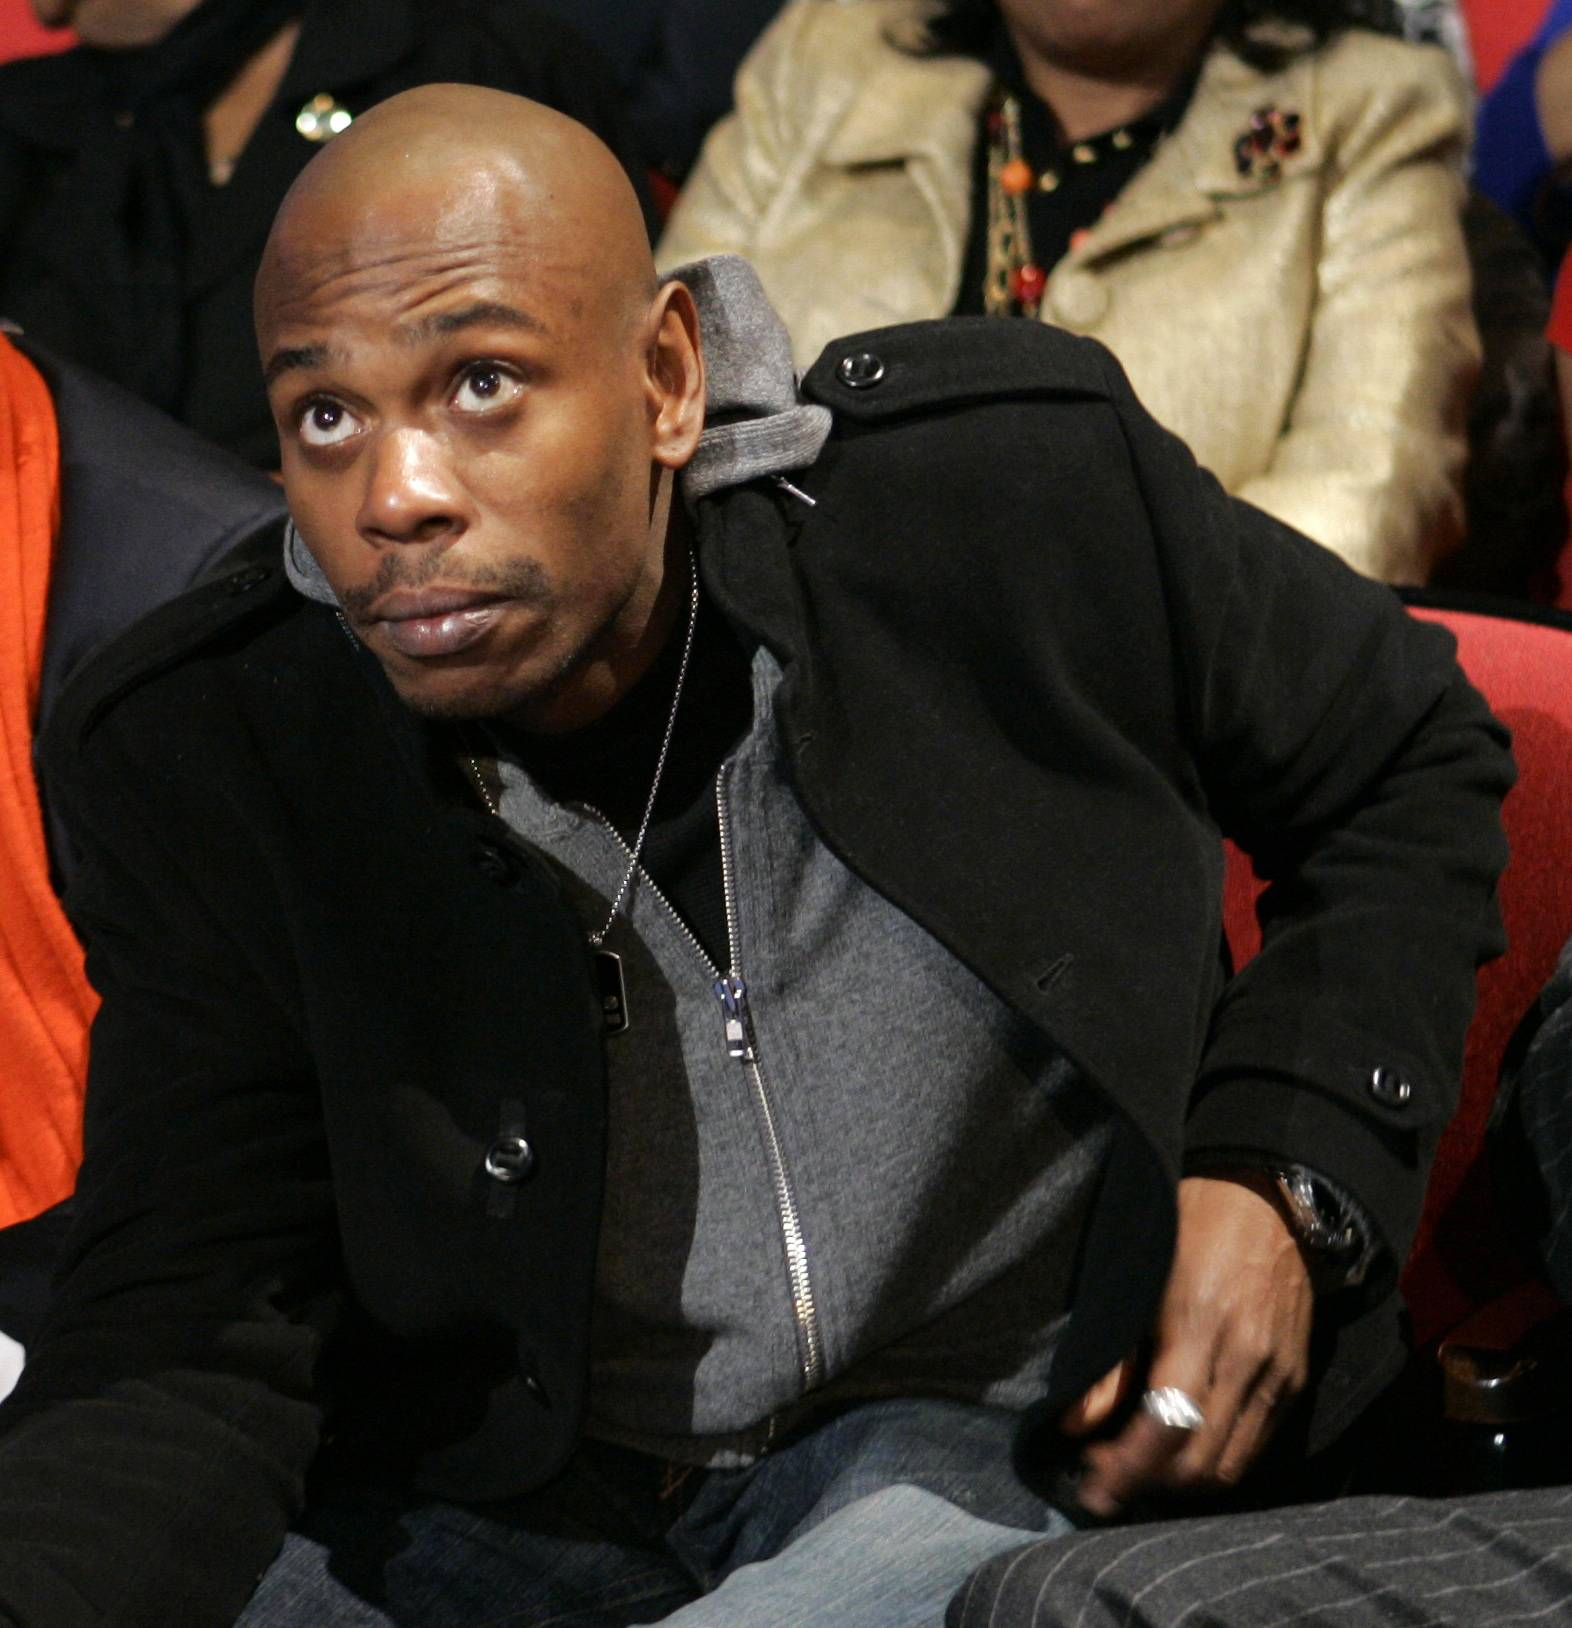 Comedian Dave Chappelle says he never quit his Comedy Central show. He's just seven years late to work.